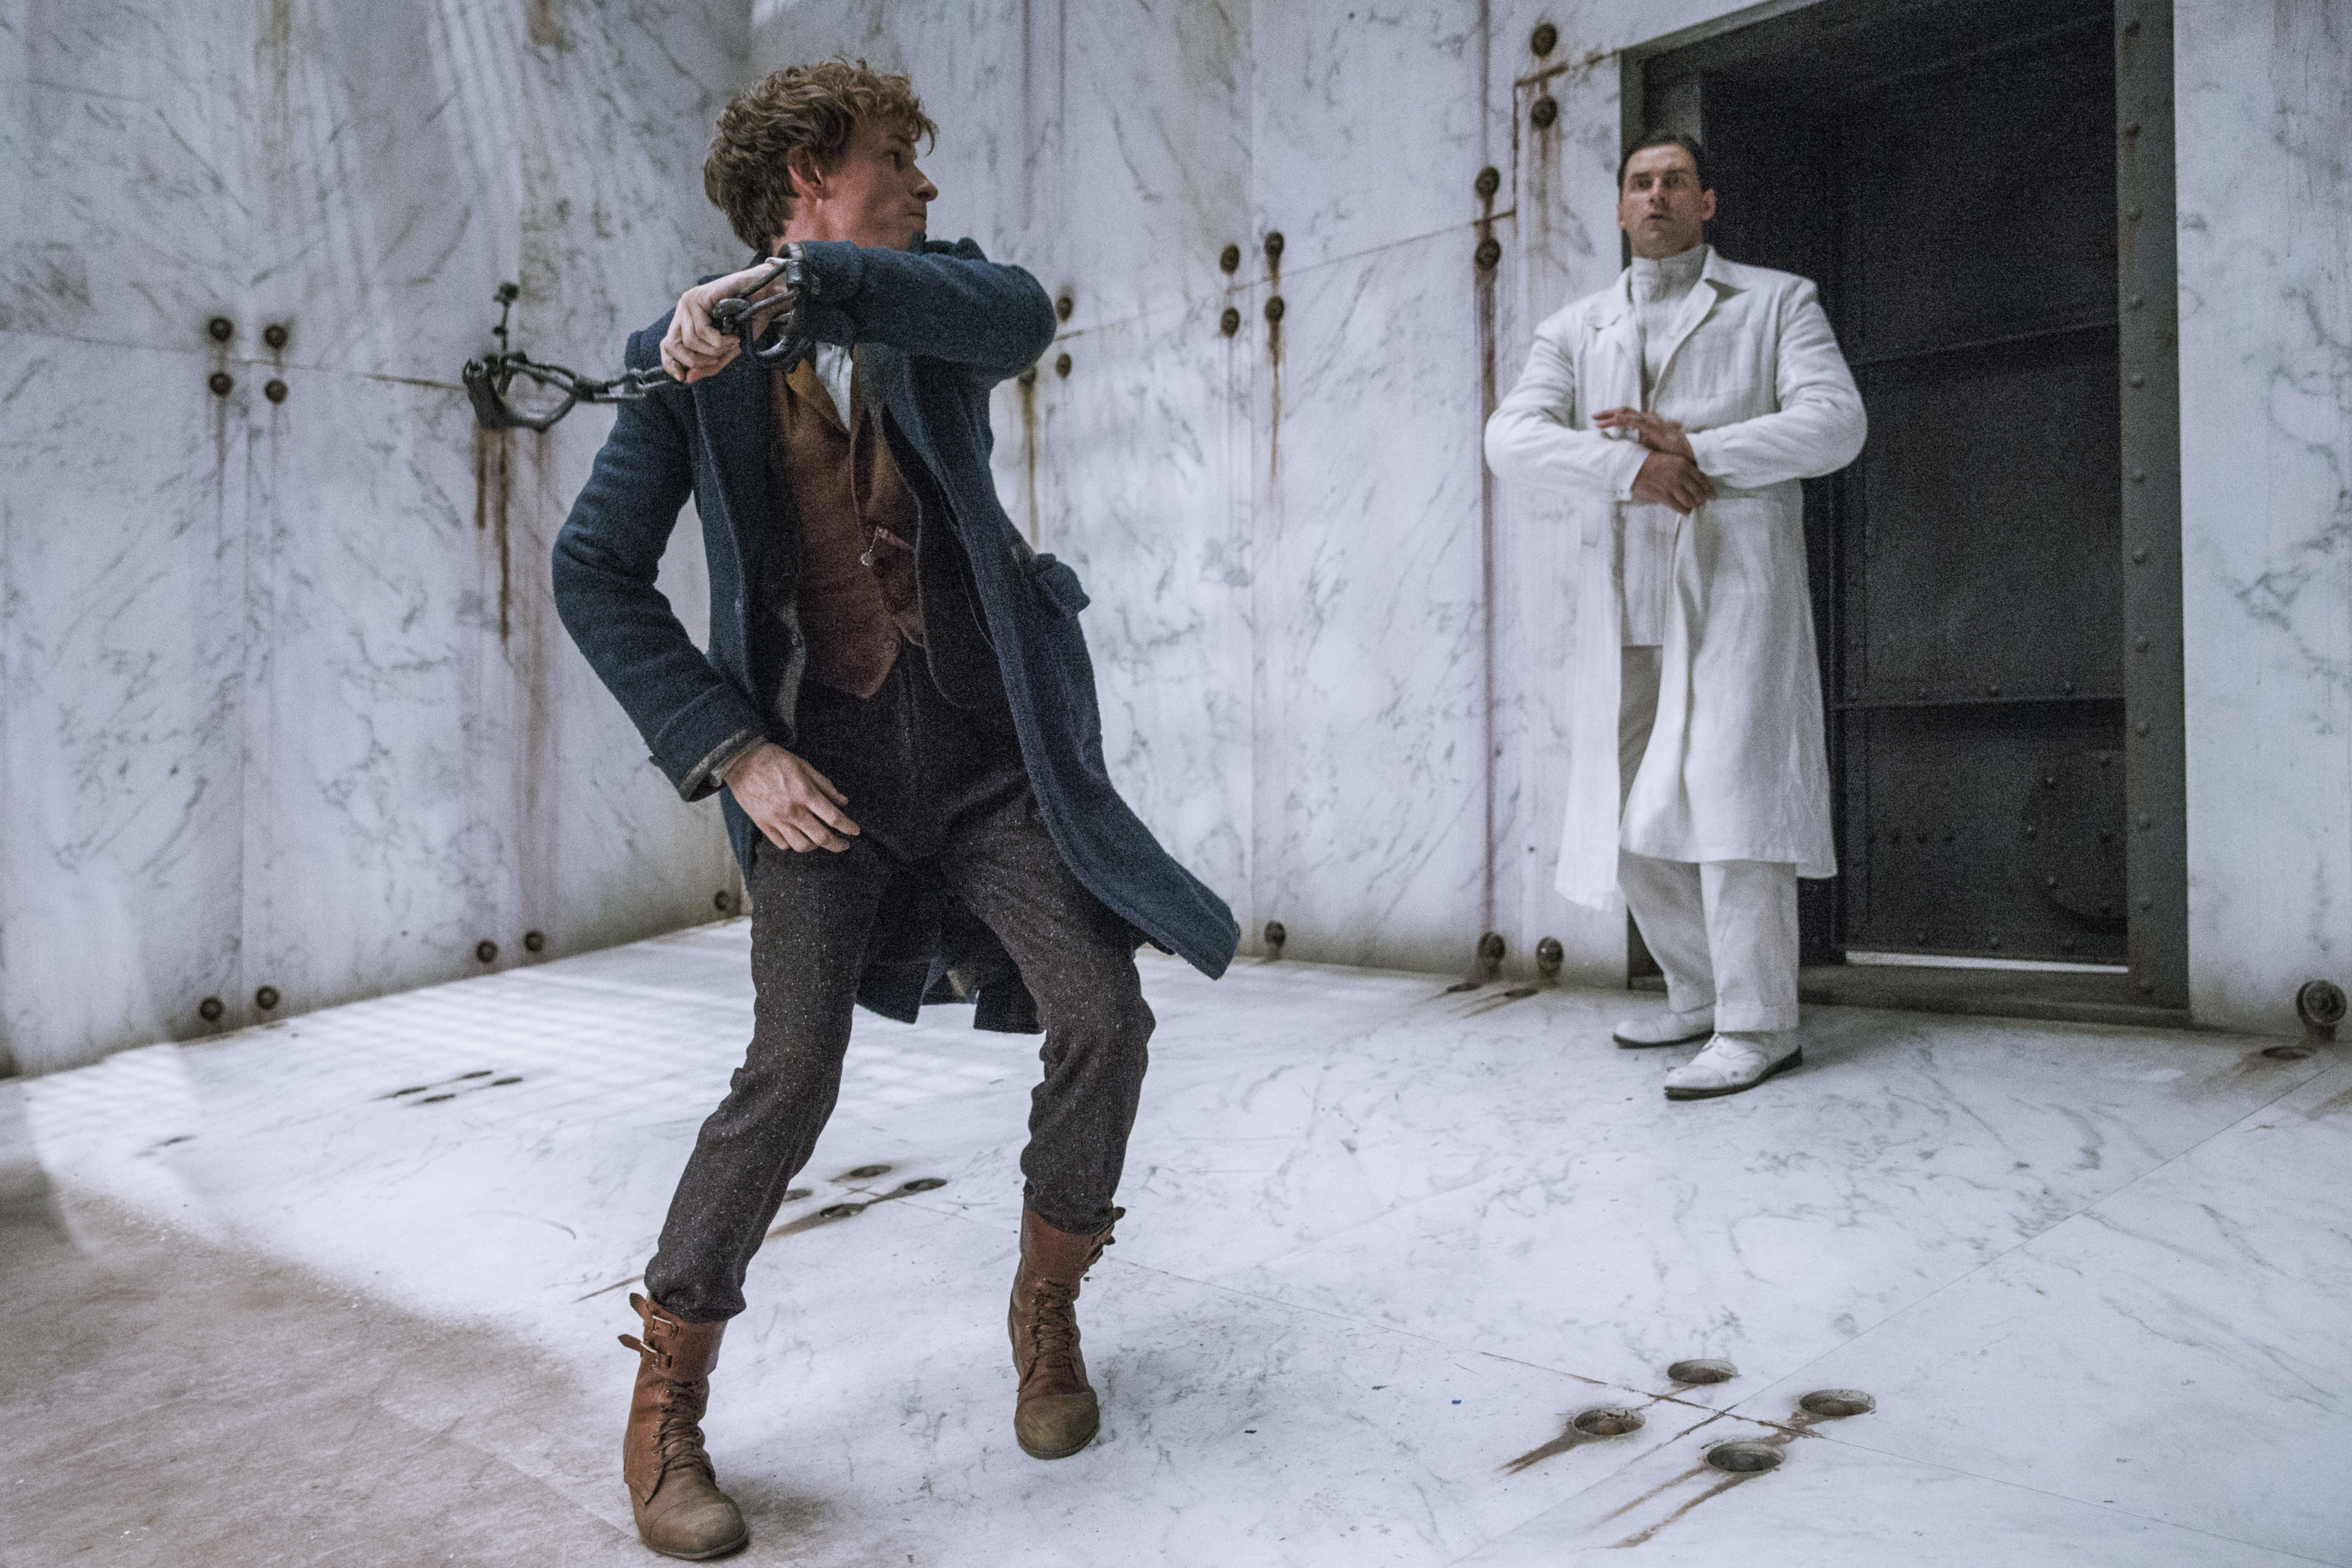 Newt Scamander tries to escape the Death Cell at MACUSA